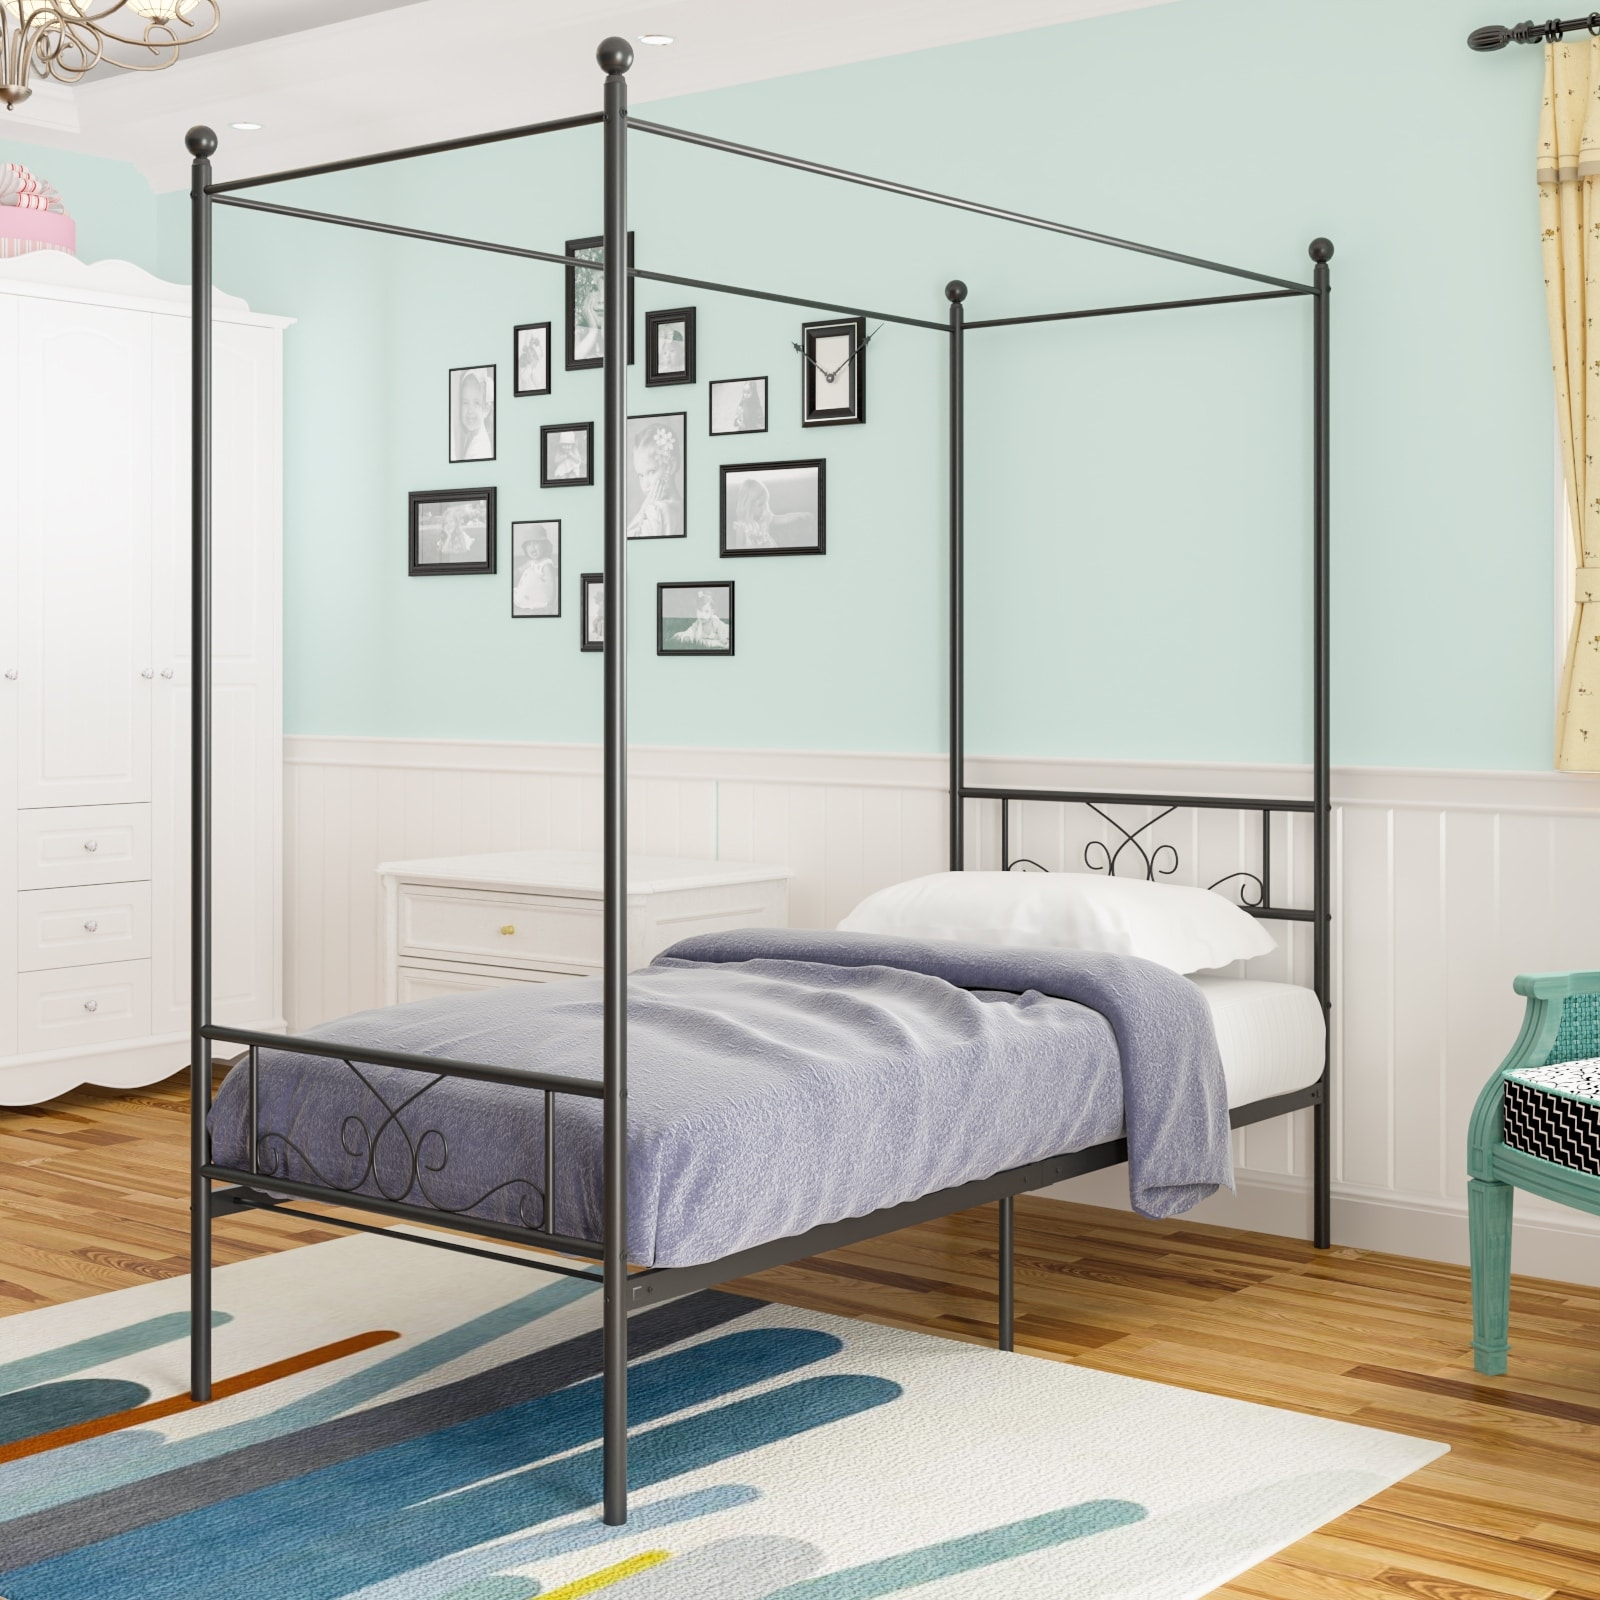 Shop Black Friday Deals On Teraves 4 Post Metal Twin Full Queen Canopy Bed Frame With Ball Design Slats Headboard And Footboard Multiple Colors Overstock 30029819